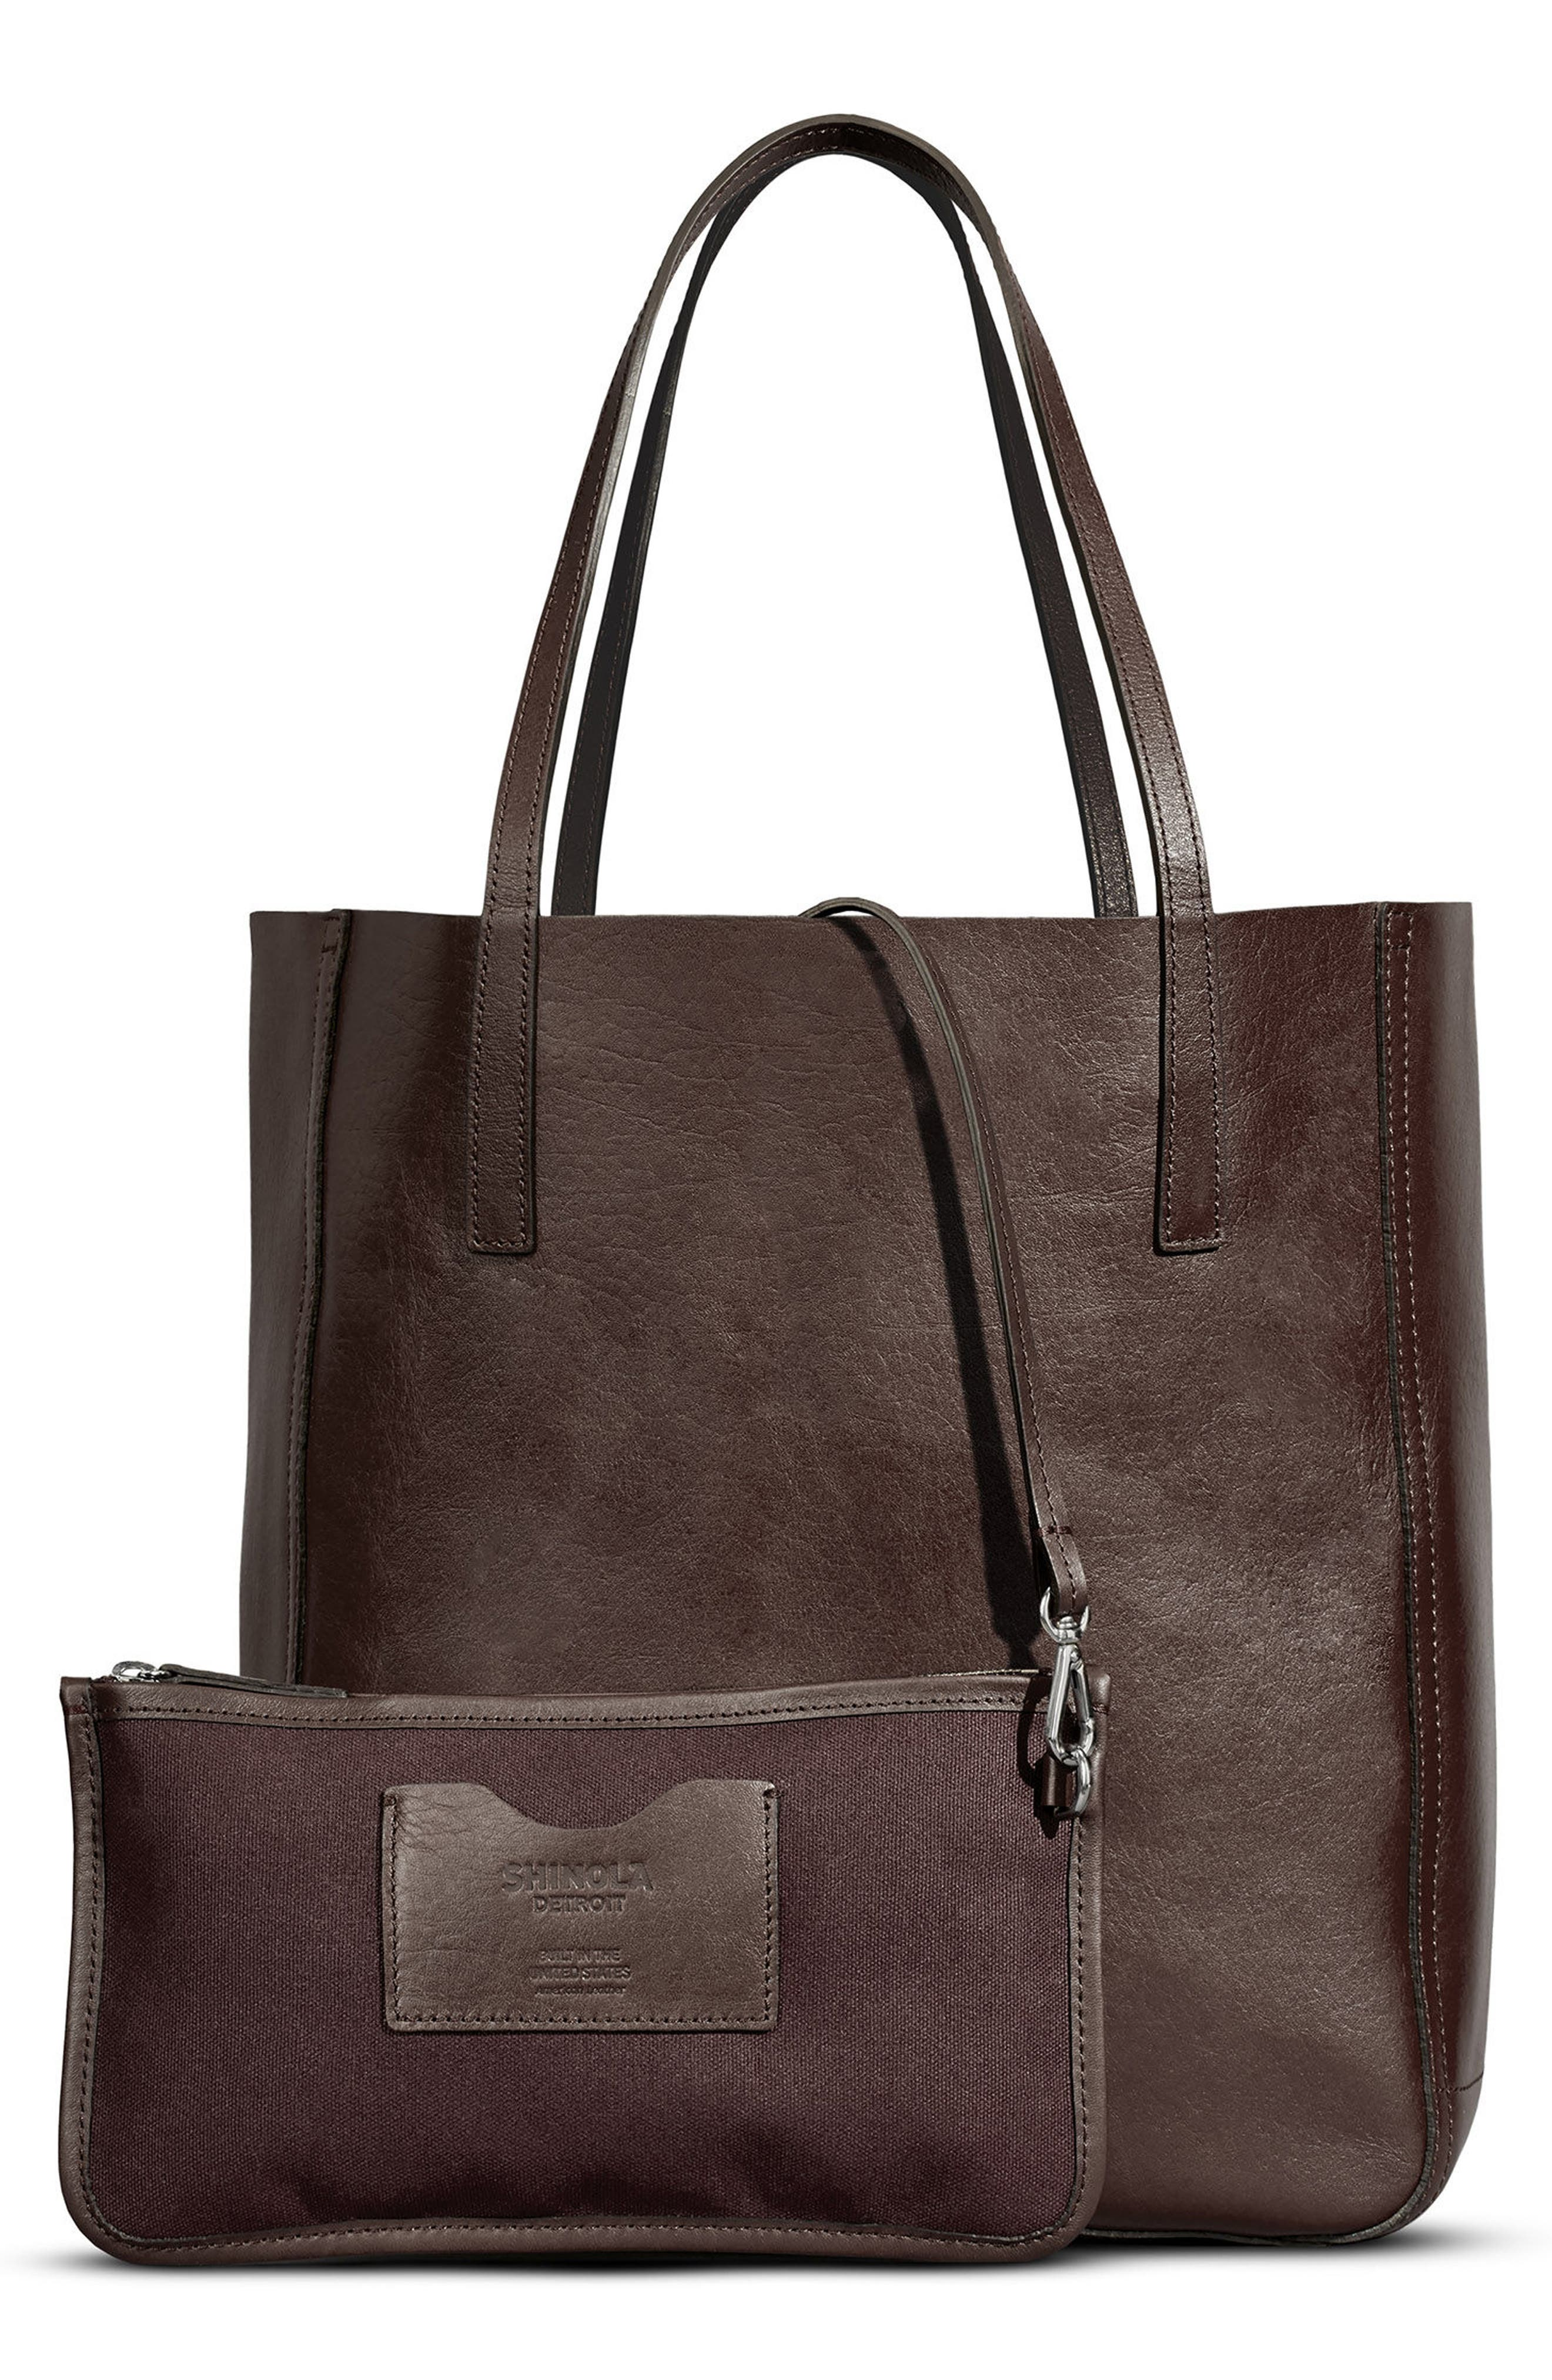 Alternate Image 1 Selected - Shinola Medium Leather Shopper (Nordstrom Exclusive)